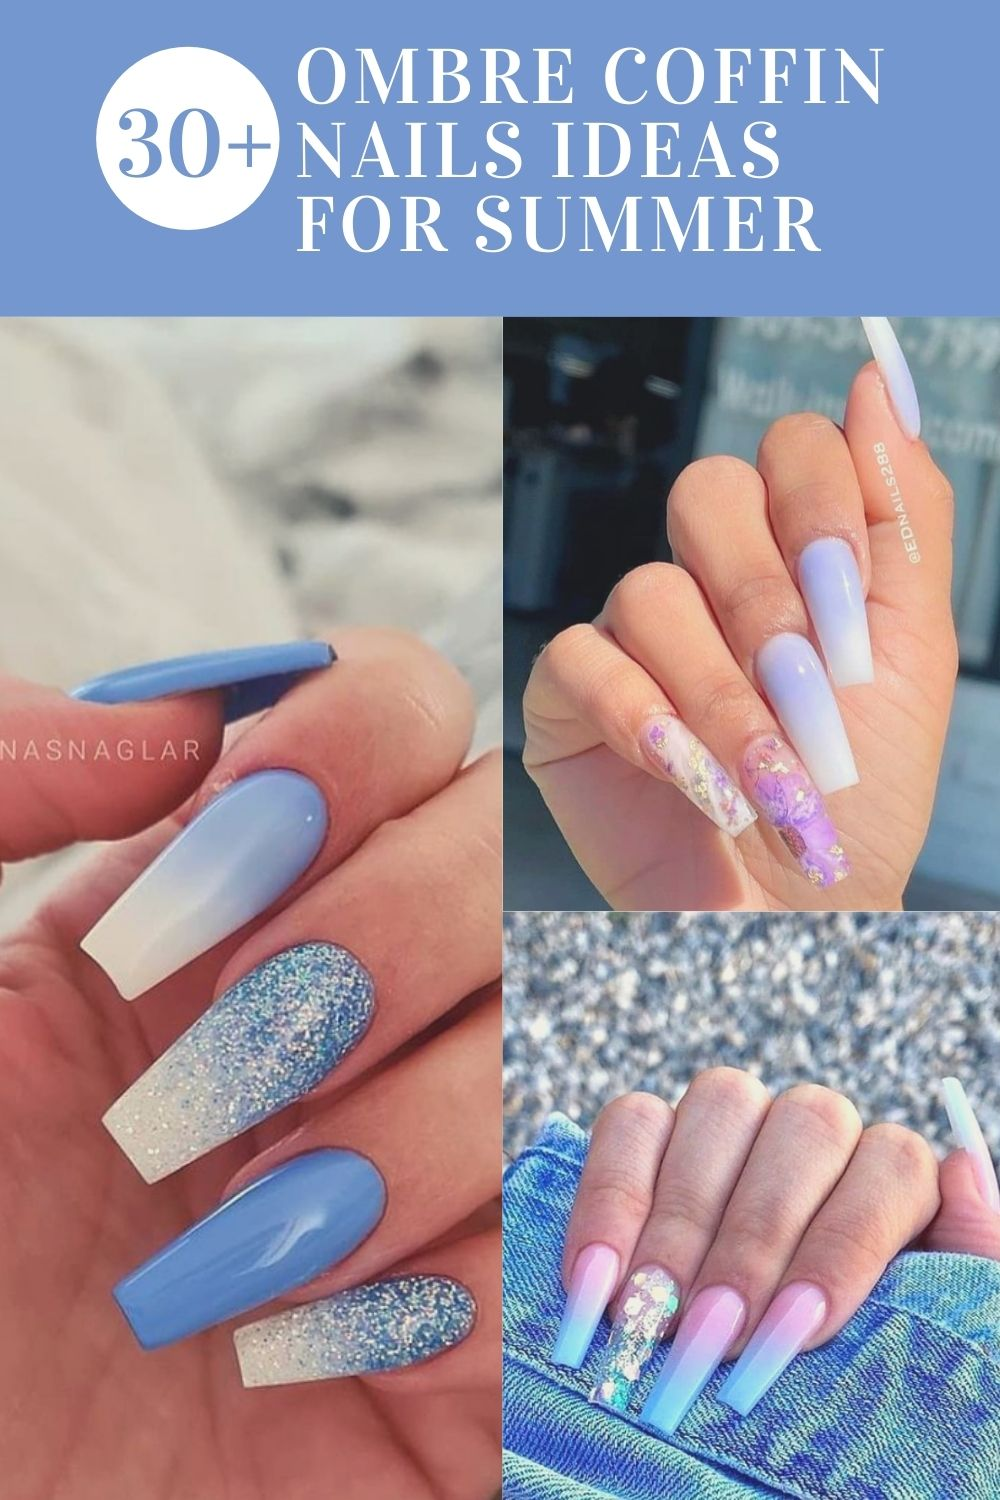 Ombre Coffin Nails In Summer Nail Design